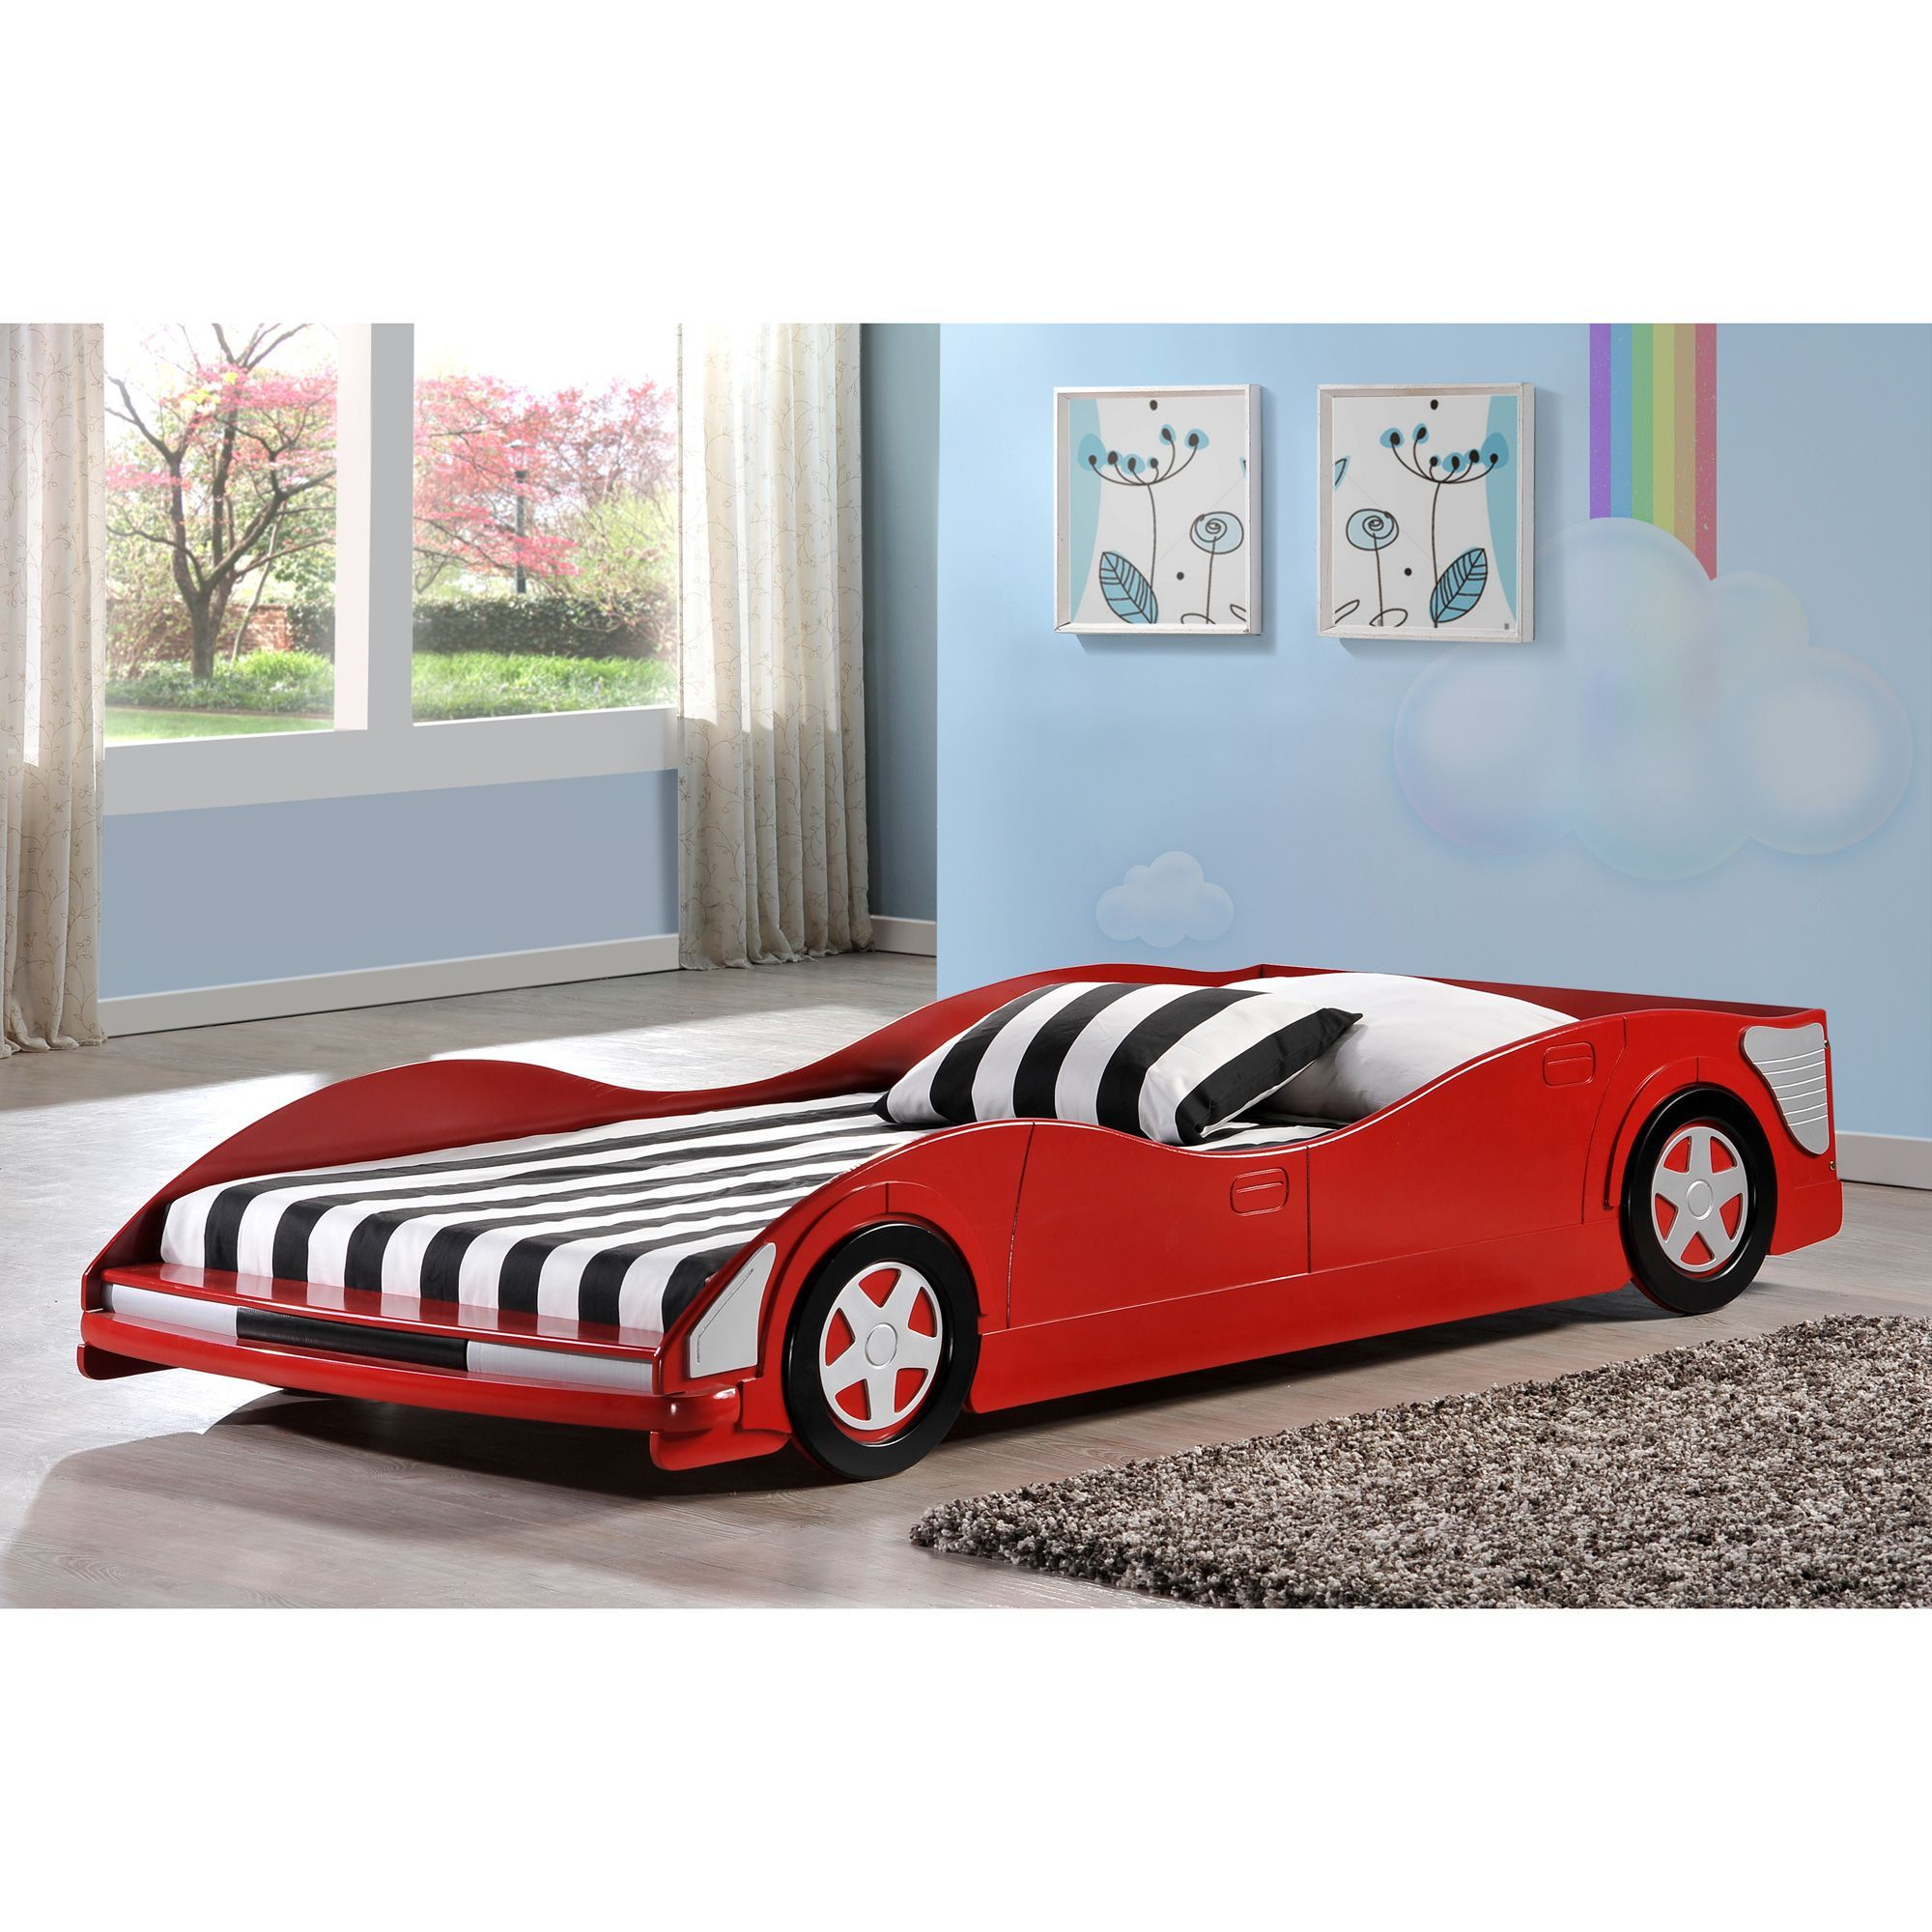 IQ Twin Turbo Car Single Bed CLEARANCE Convertible